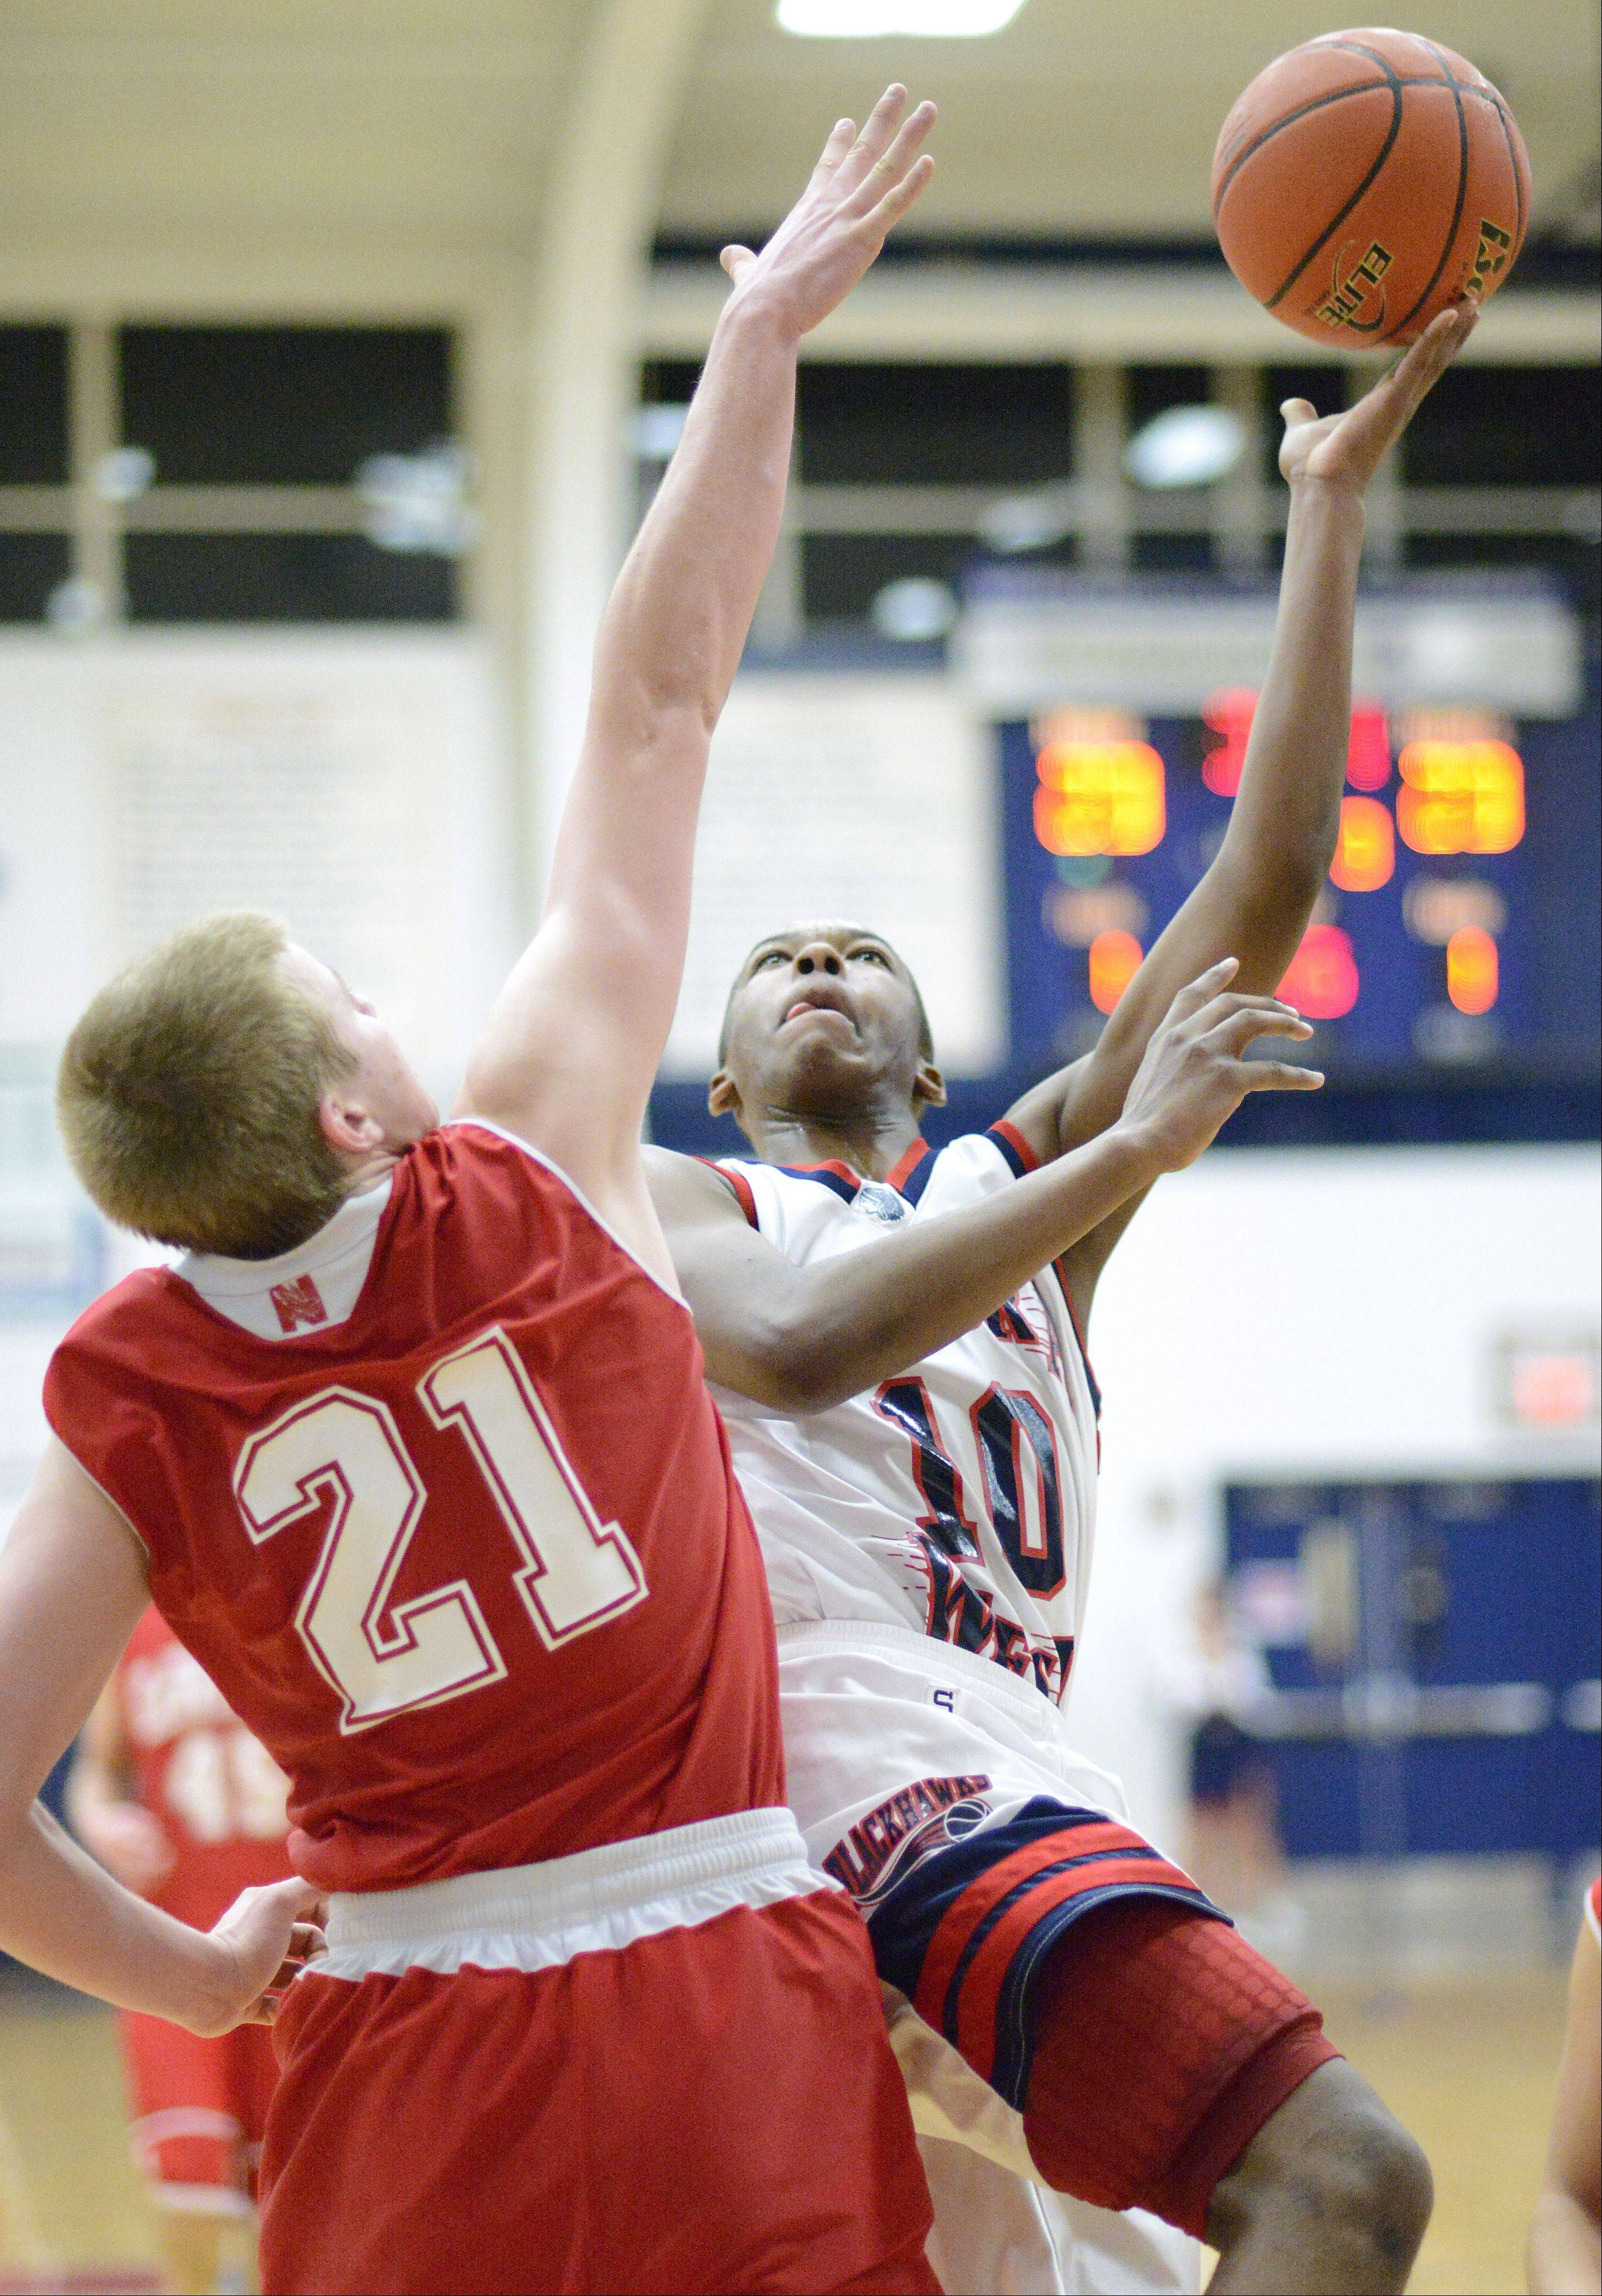 Naperville Central's Mike Blaszceyk attempts to block a shot by West Aurora's Jontrel Walker in the third quarter on Tuesday, January 29.